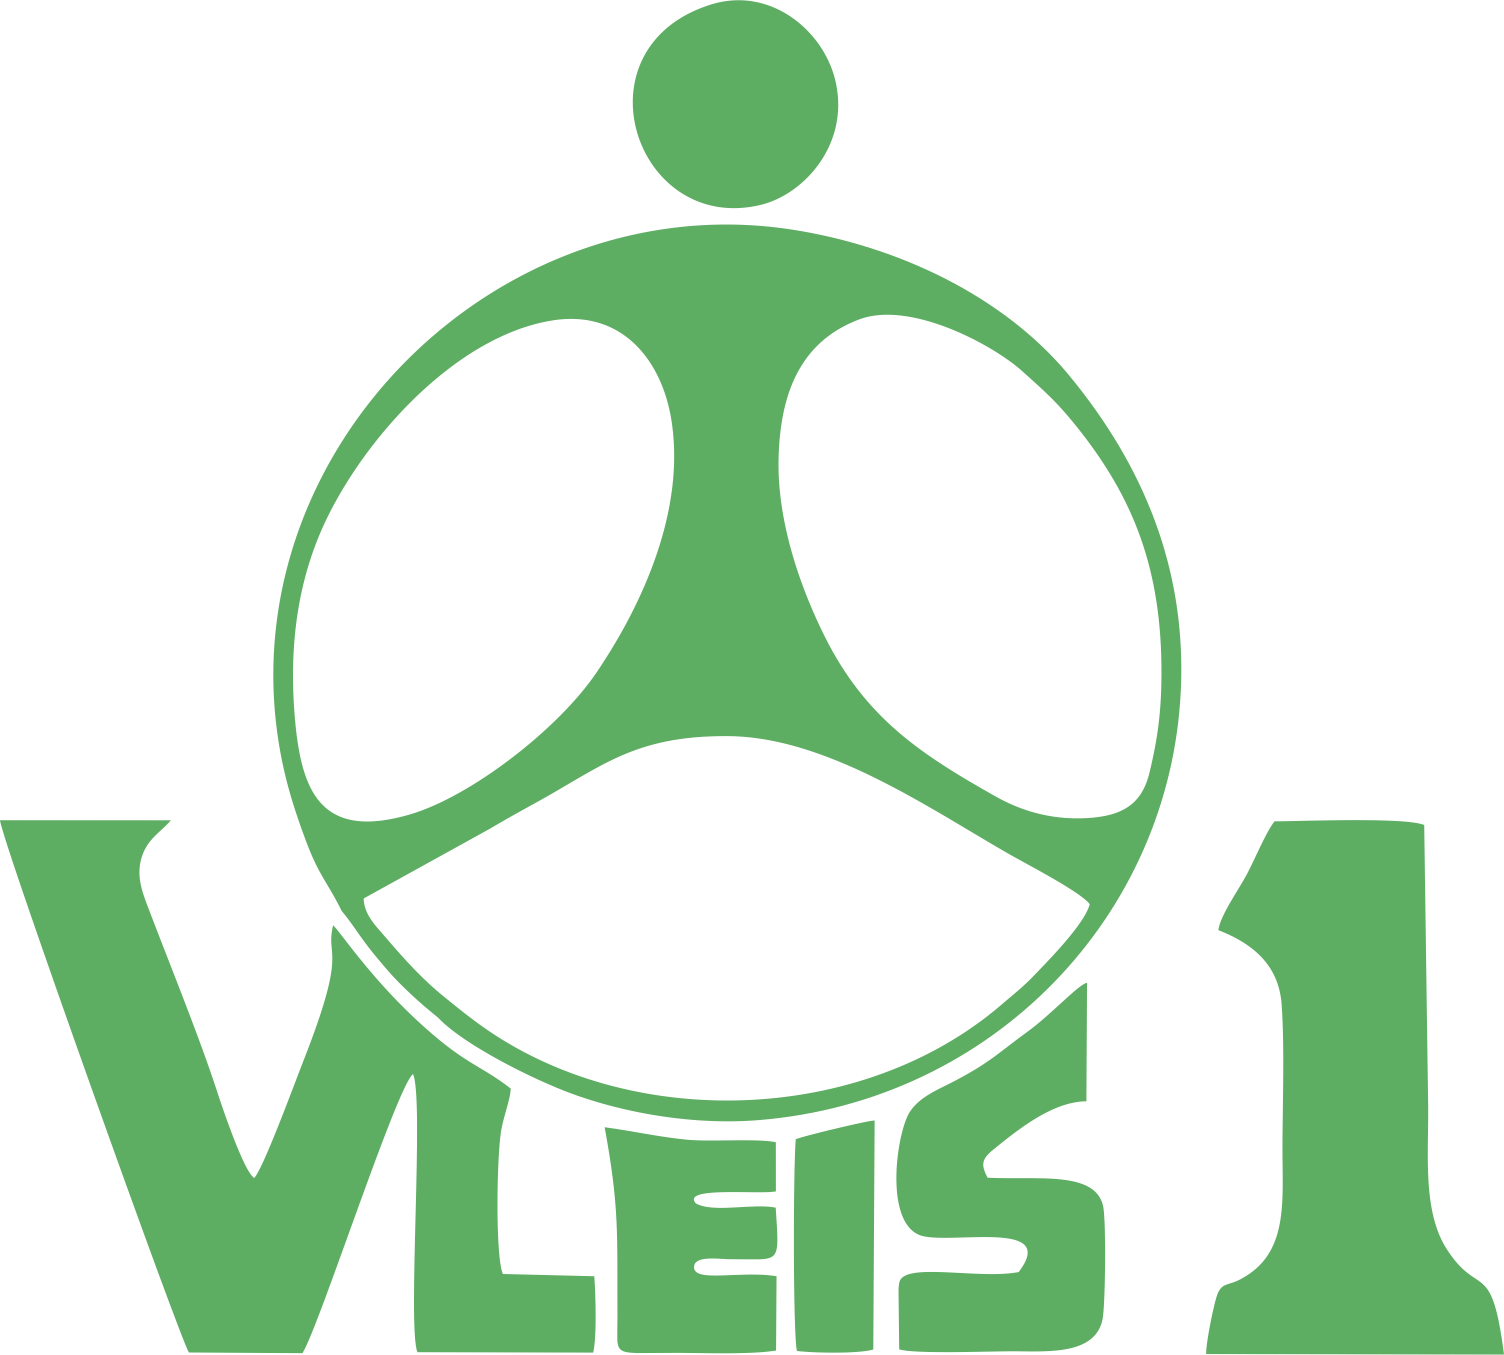 Vleis 1 | Wholesale Meat Supplier